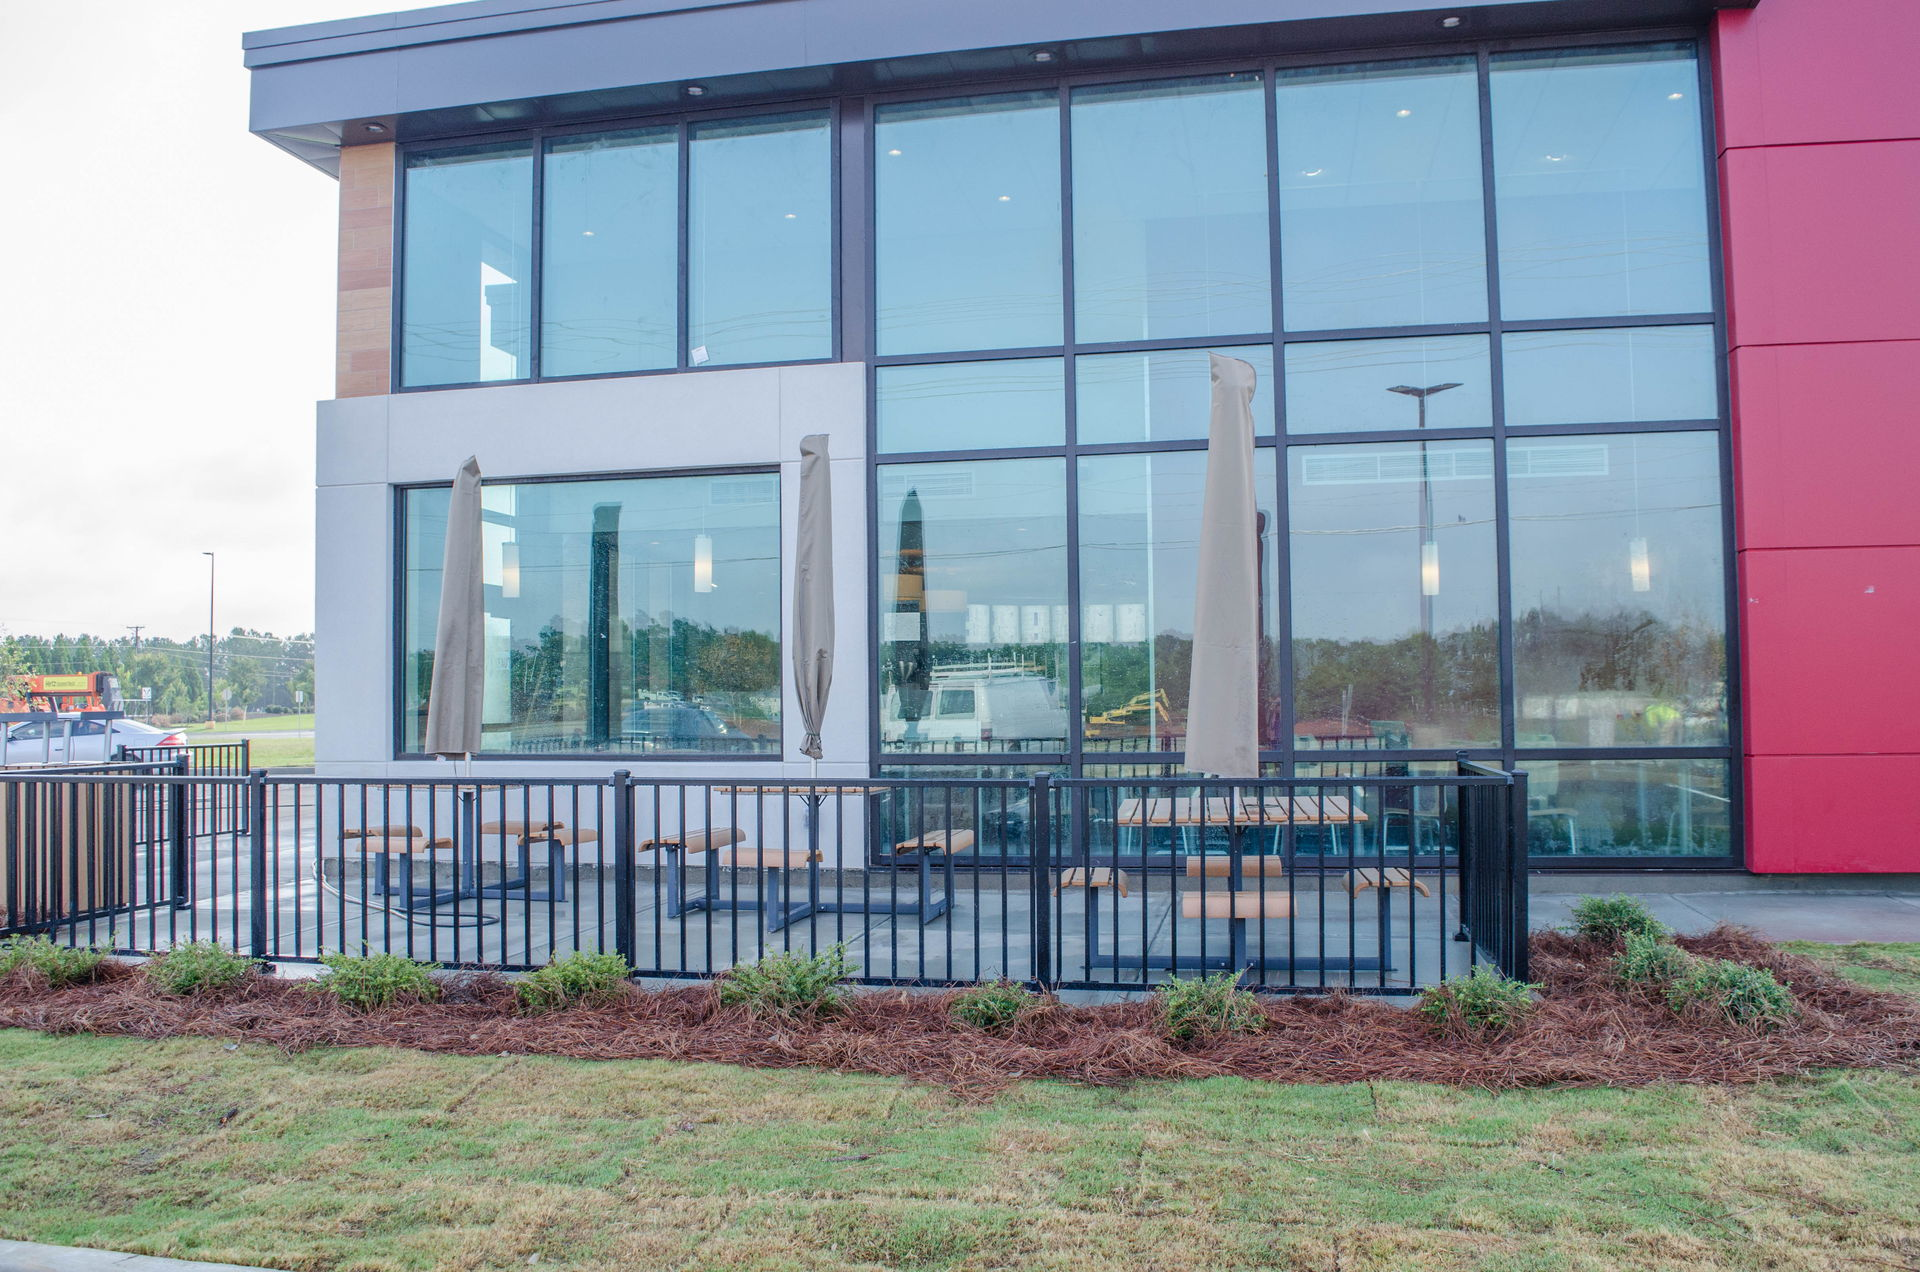 Bluffton, SC Commercial Restaurant landscaping to improve business's curb appeal.